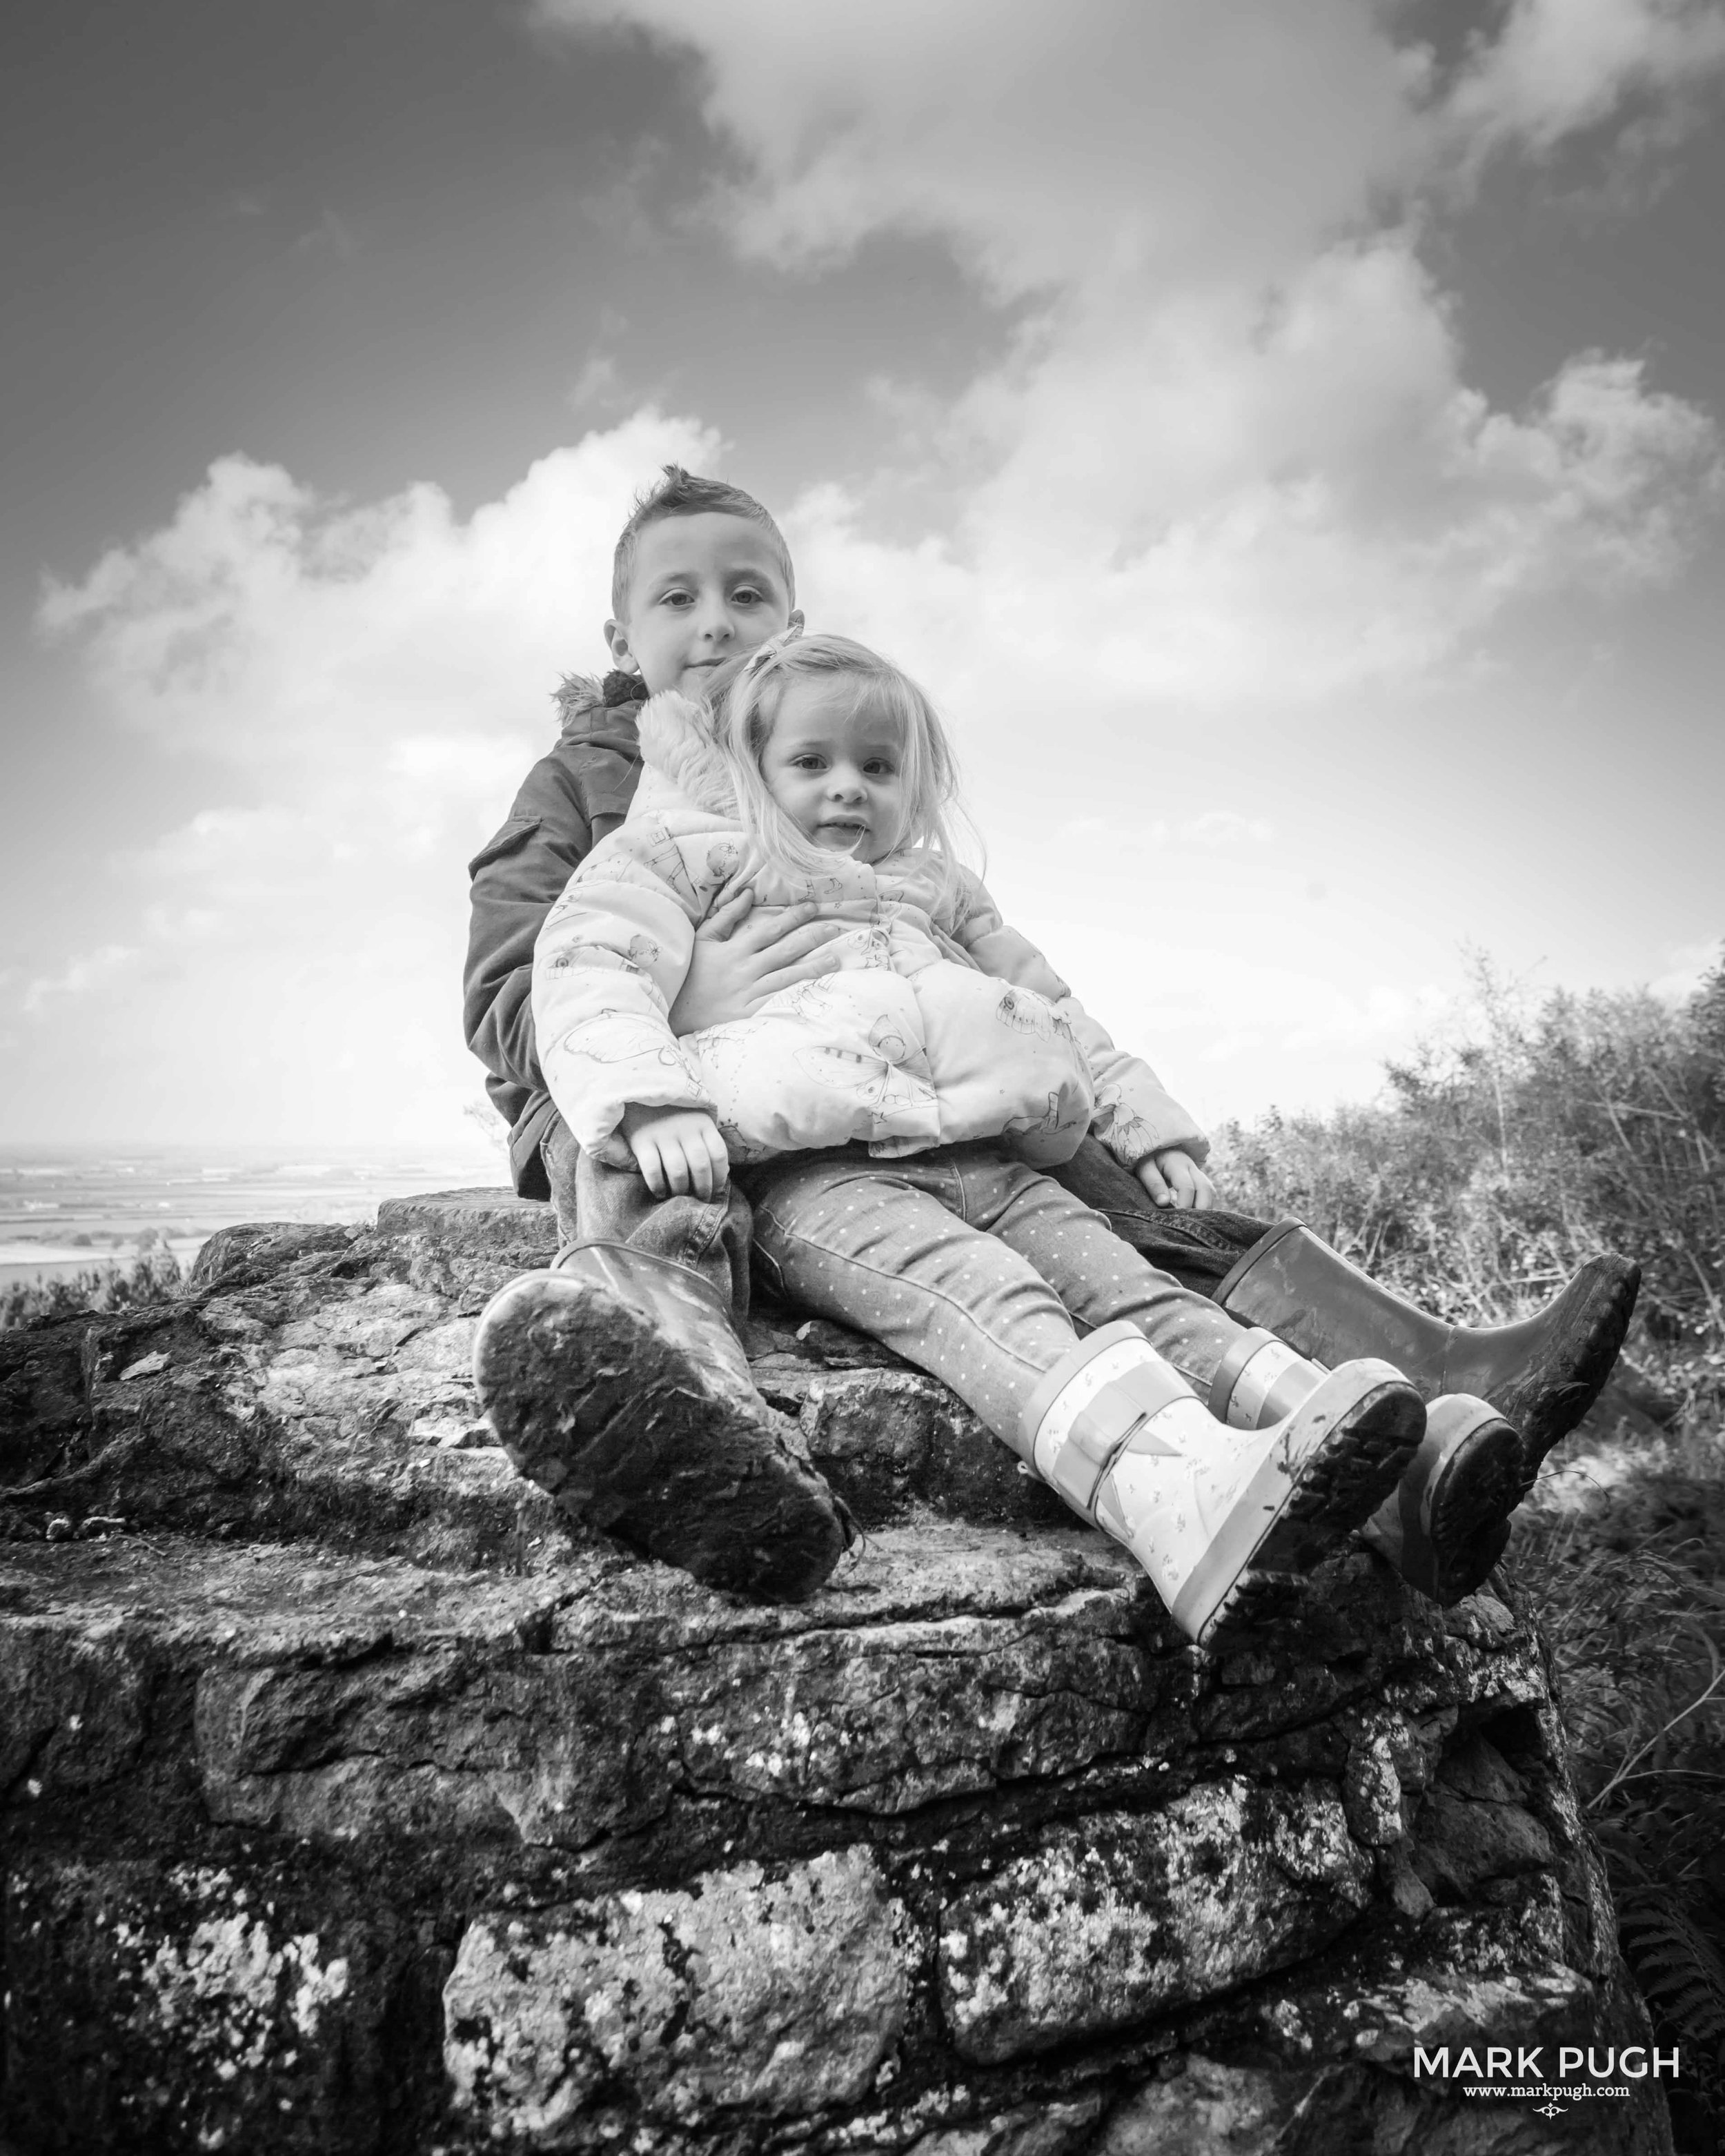 049 - Claire Richard Oliver Dominic and Neave Family photography in the Vale of Belvoir by www.markpugh.com Mark Pugh of www.mpmedia.co.uk 2.JPG